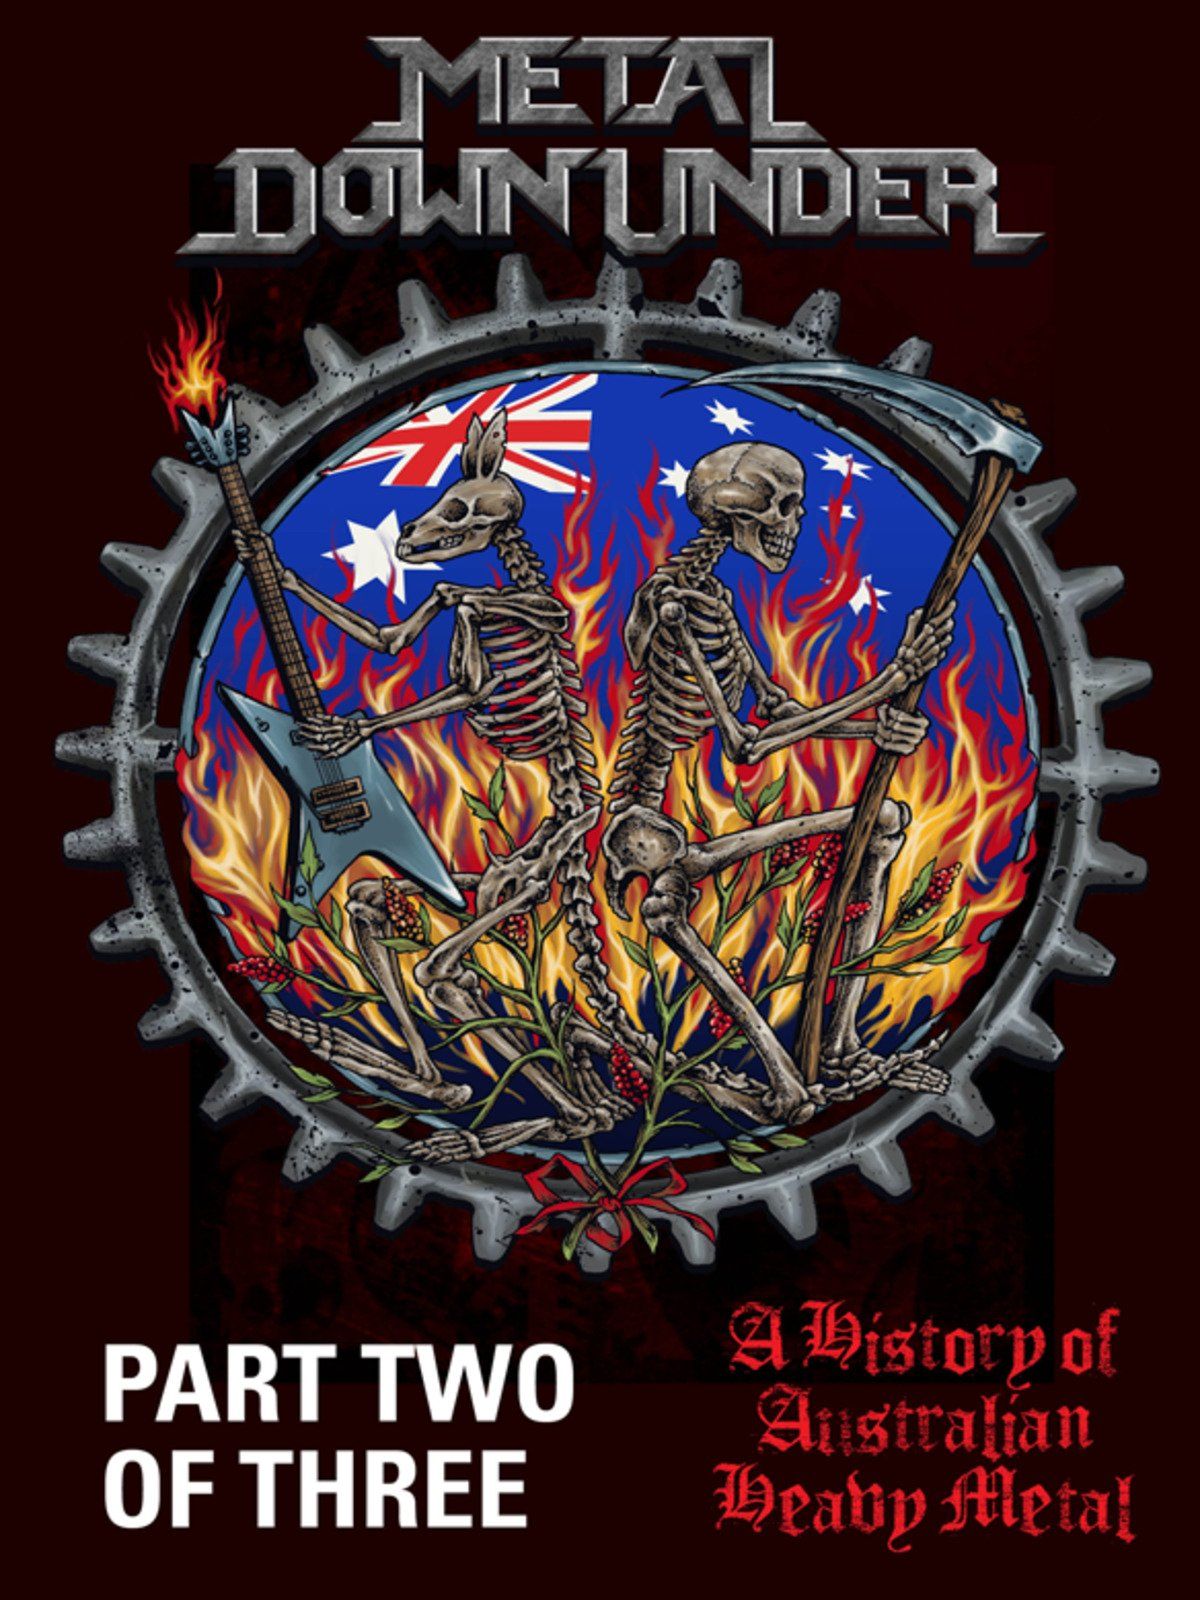 Metal Down Under (A History of Australian Heavy Metal), Part 2